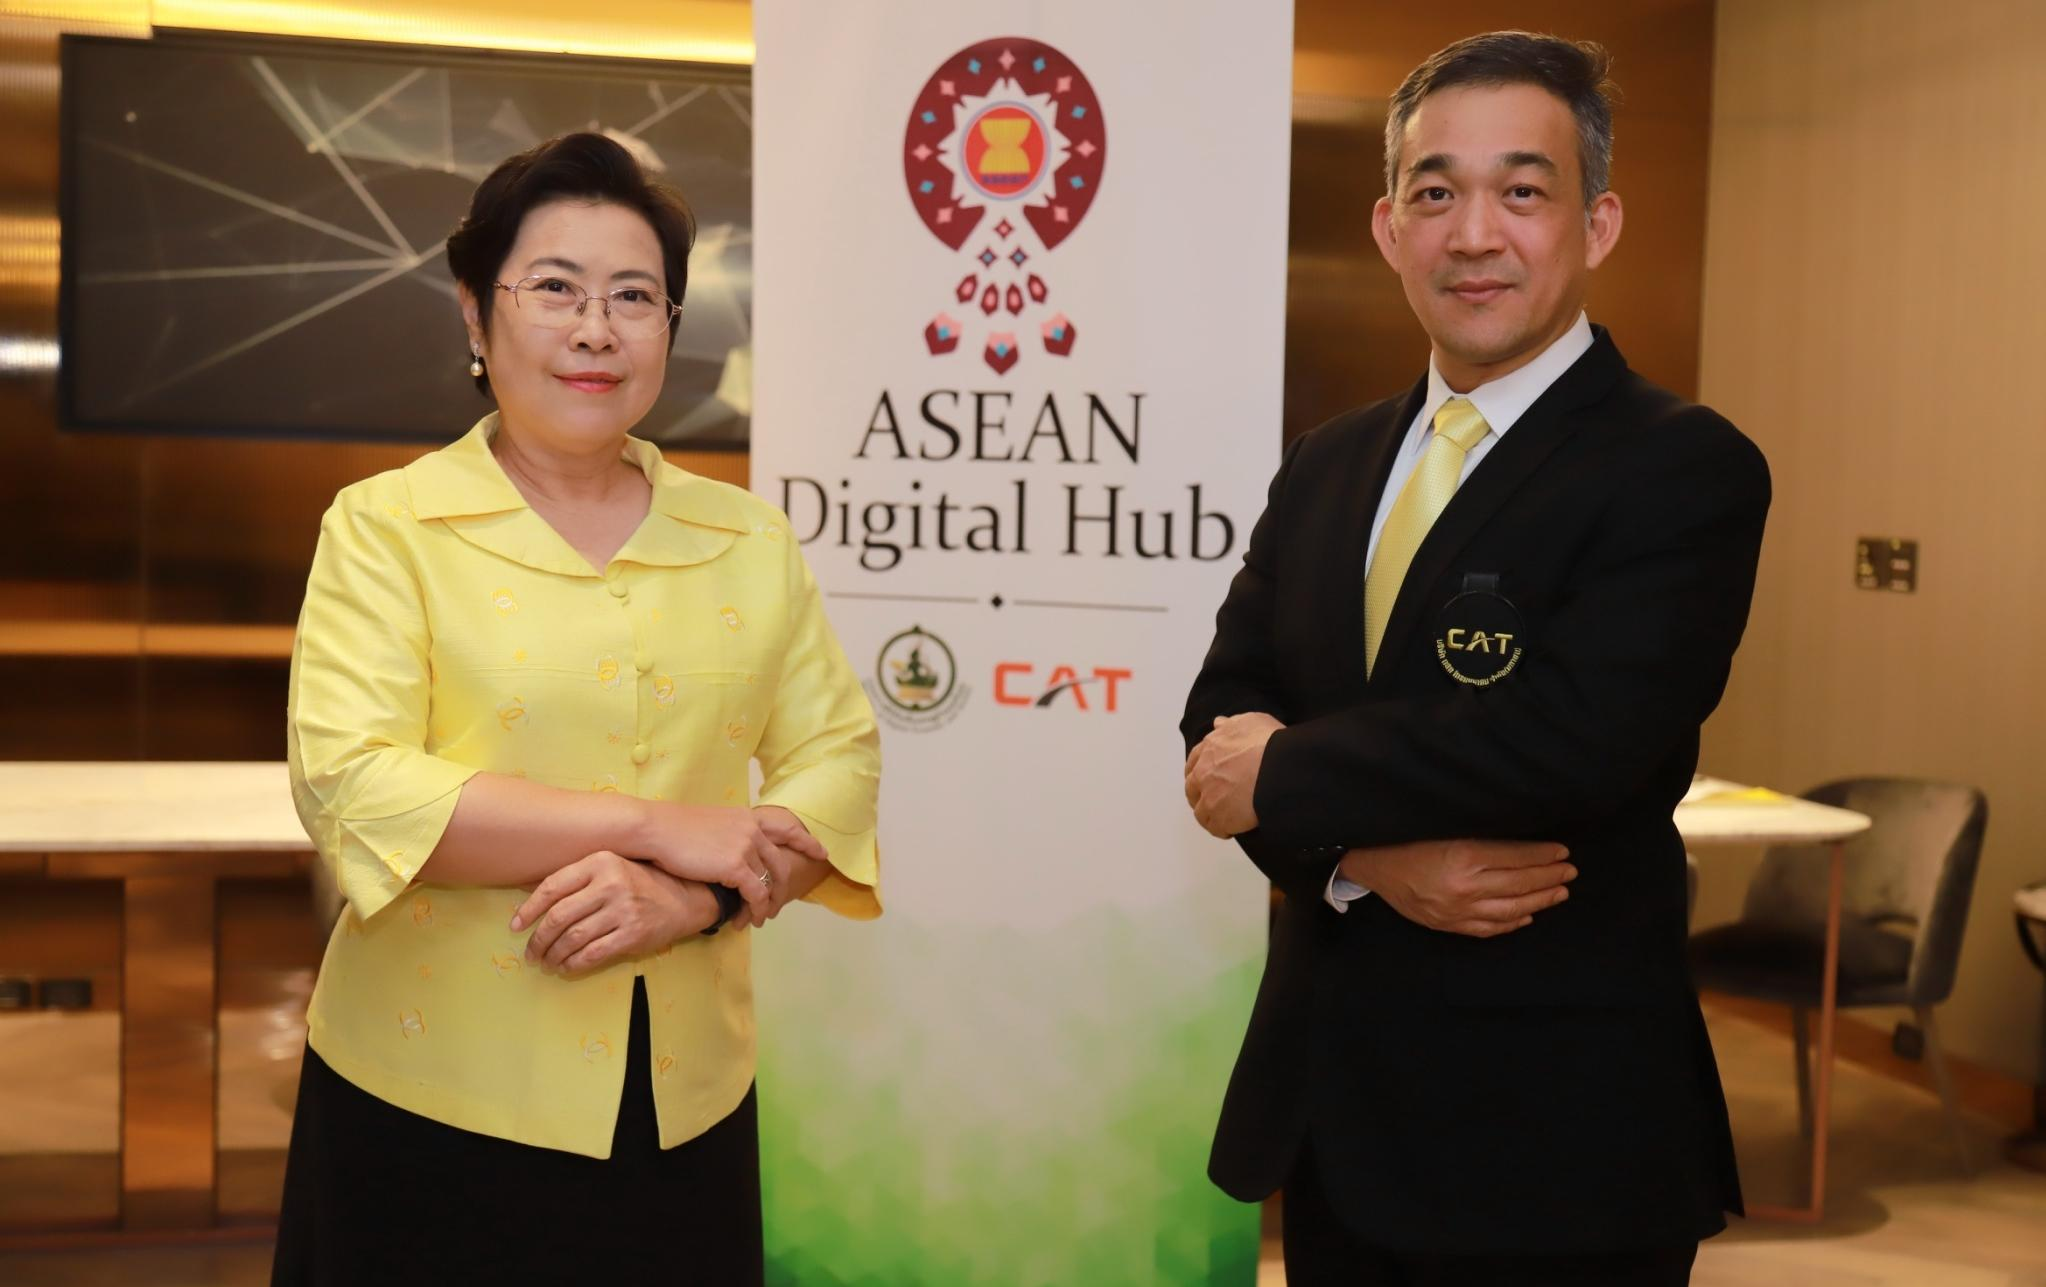 DE to improve infrastructure for submarine cable network, as Thailand pushes to become digital hub for ASEAN